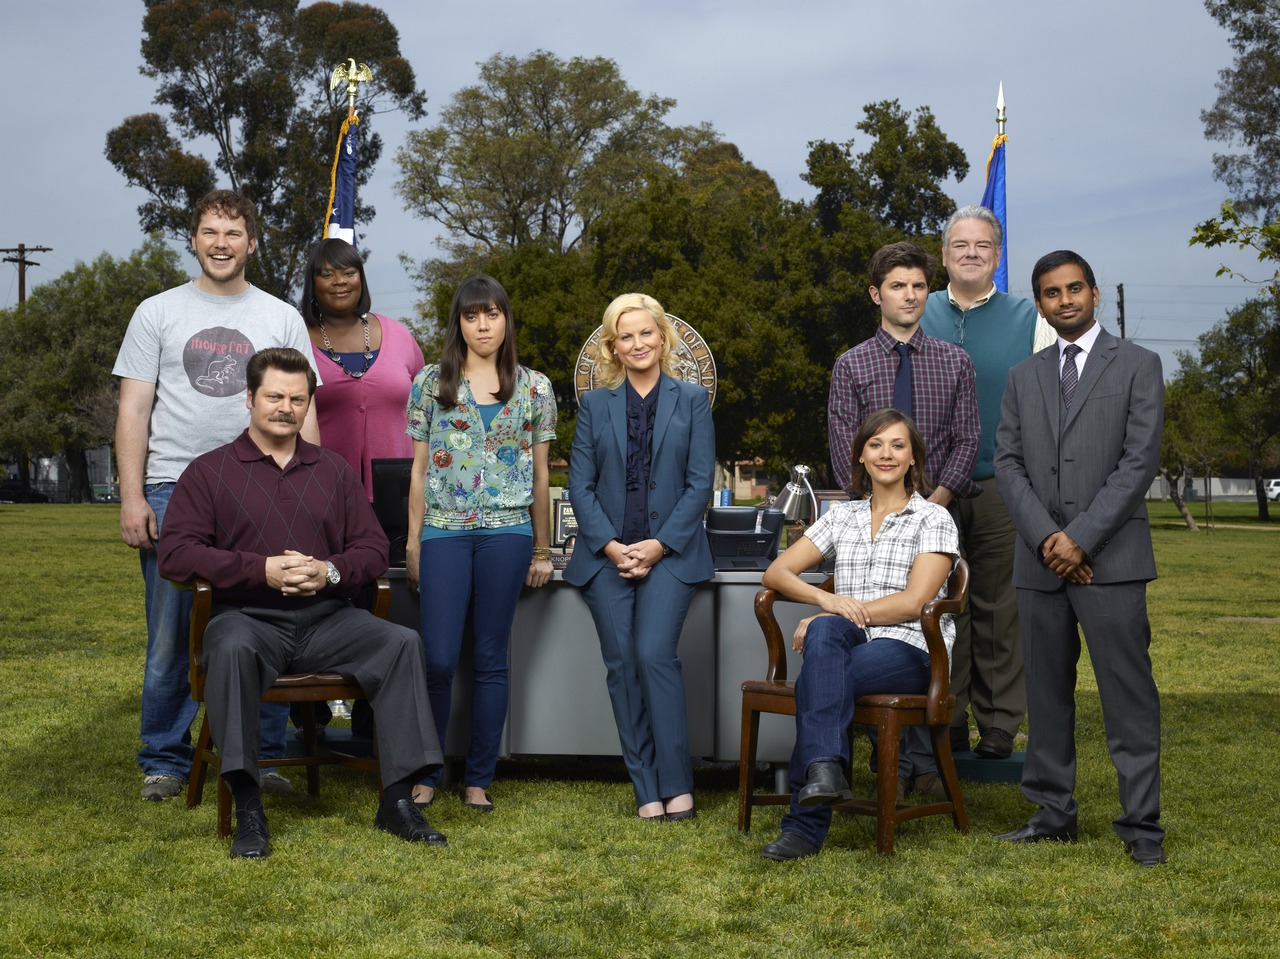 The Top 3 Funniest Moments in Parks and Recreation